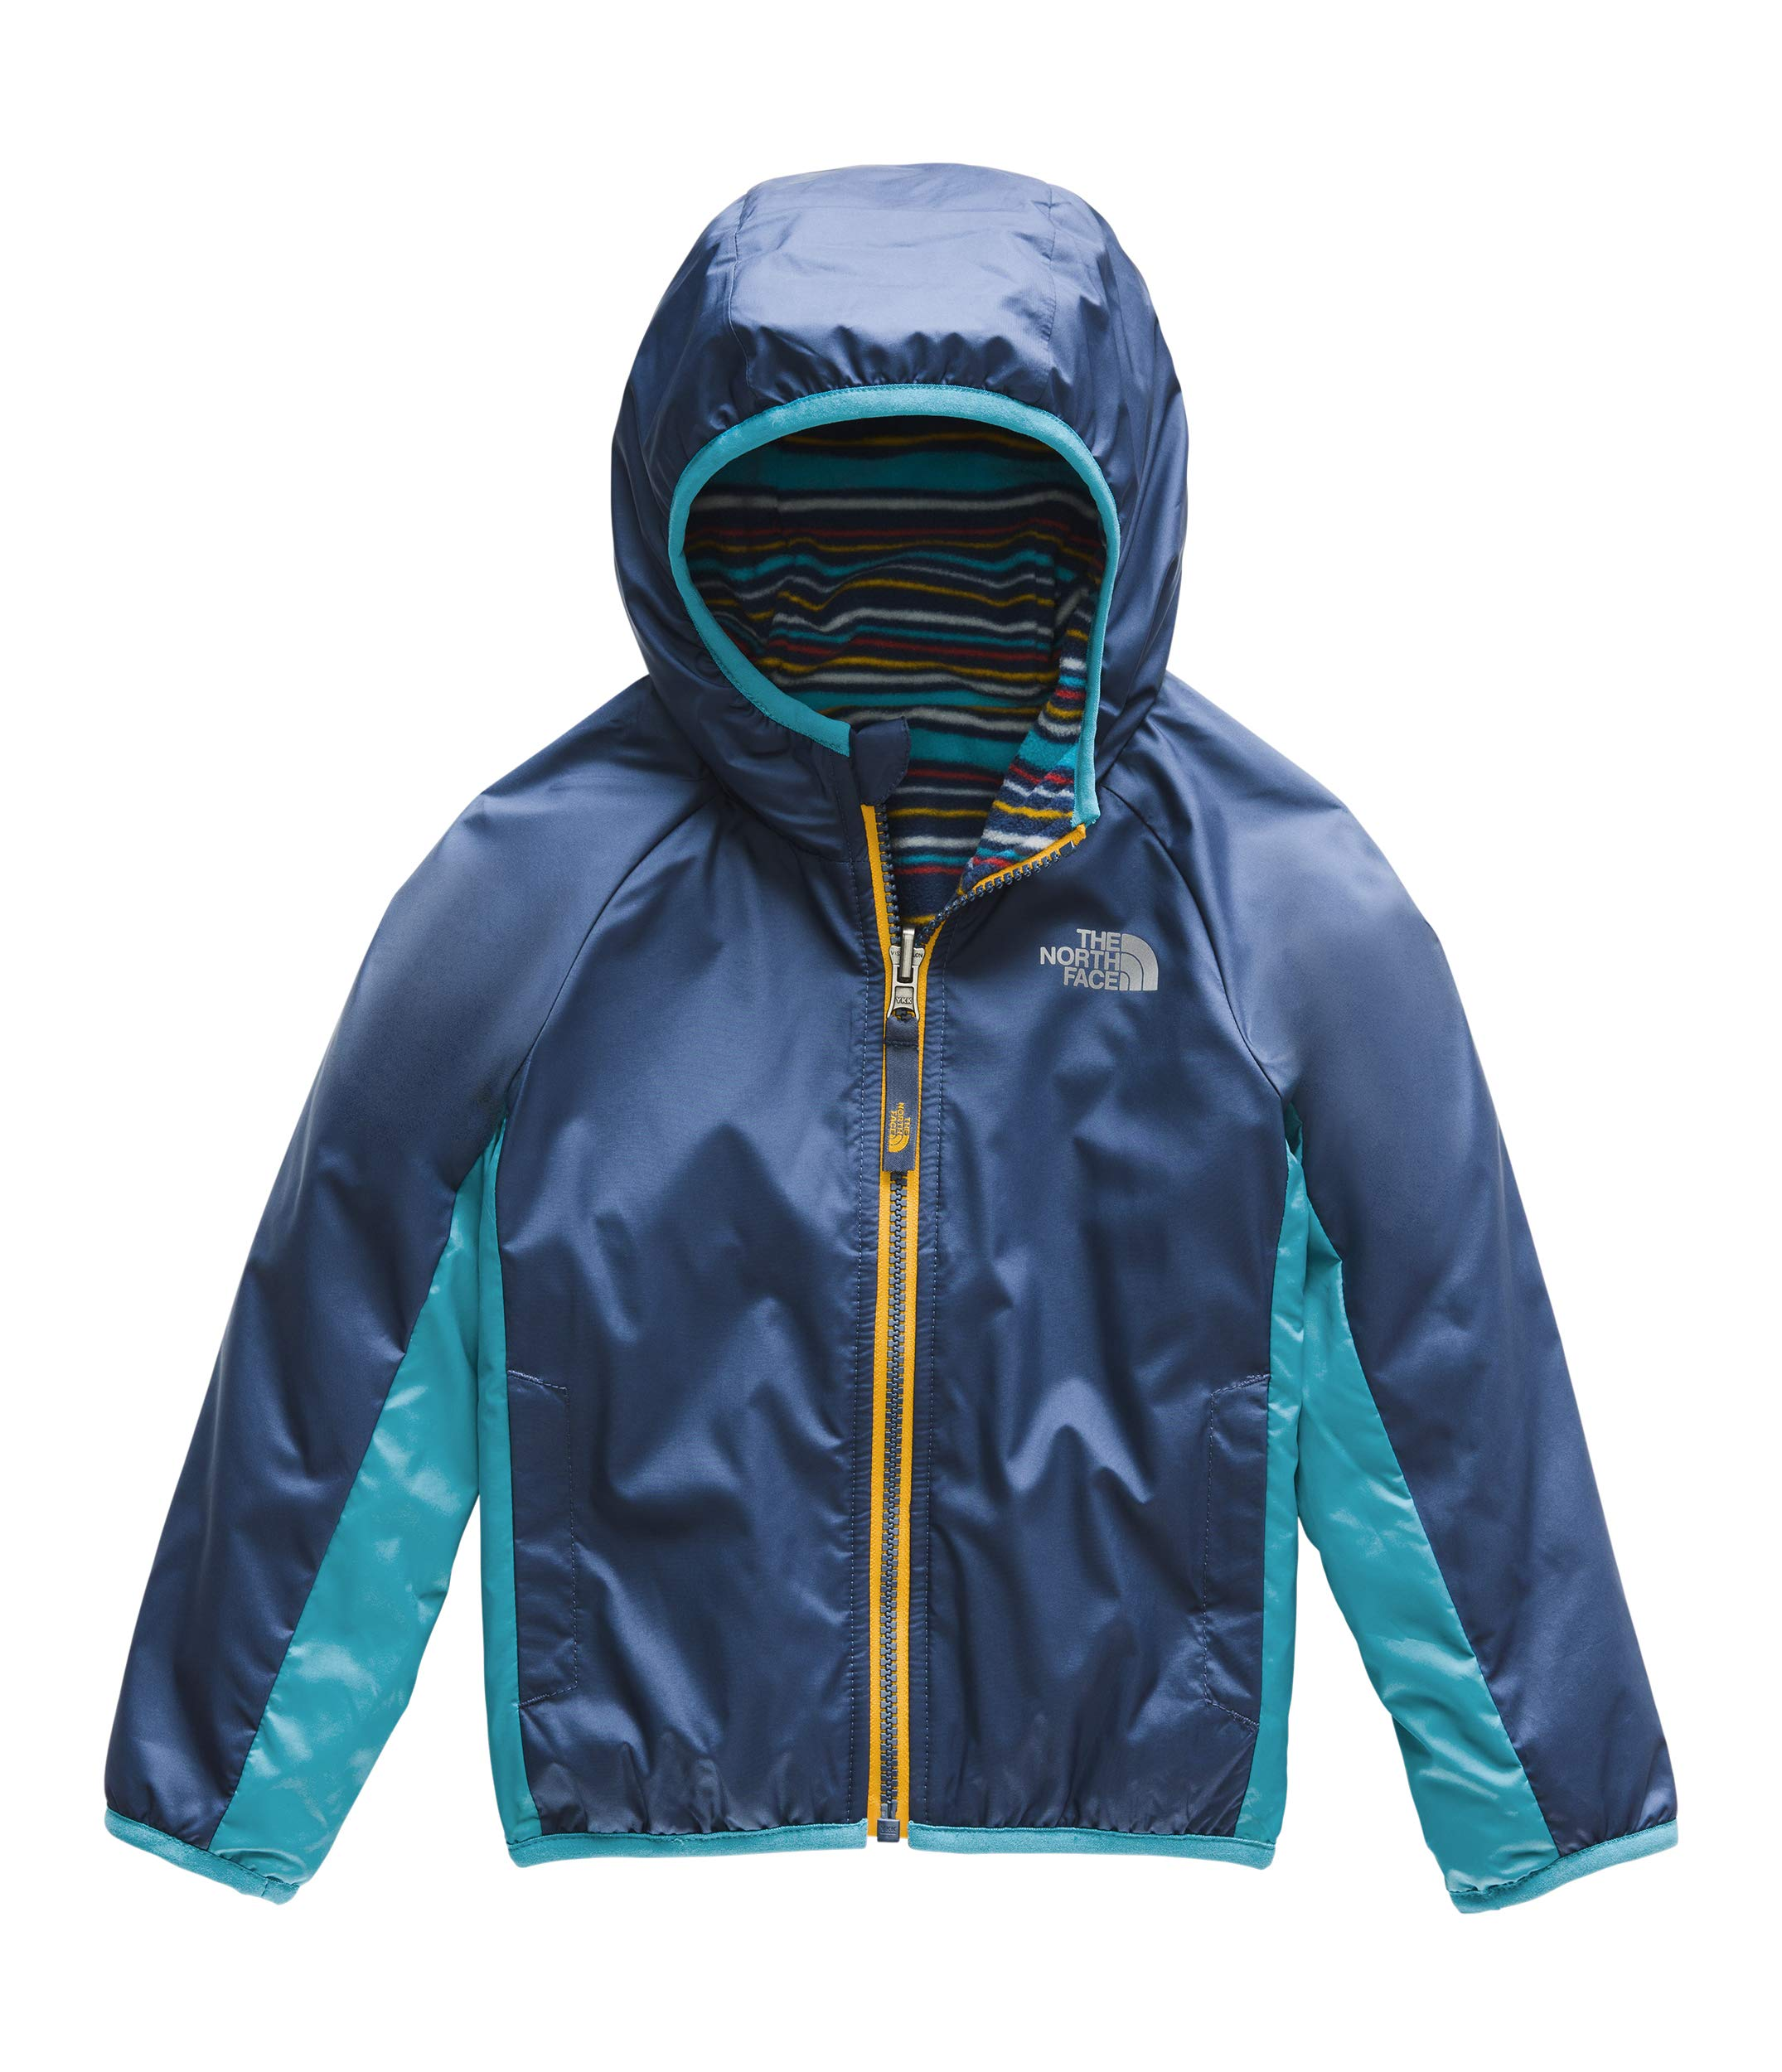 The North Face Kids Baby Boy's Reversible Breezeway Jacket (Toddler) Shady Blue 5T